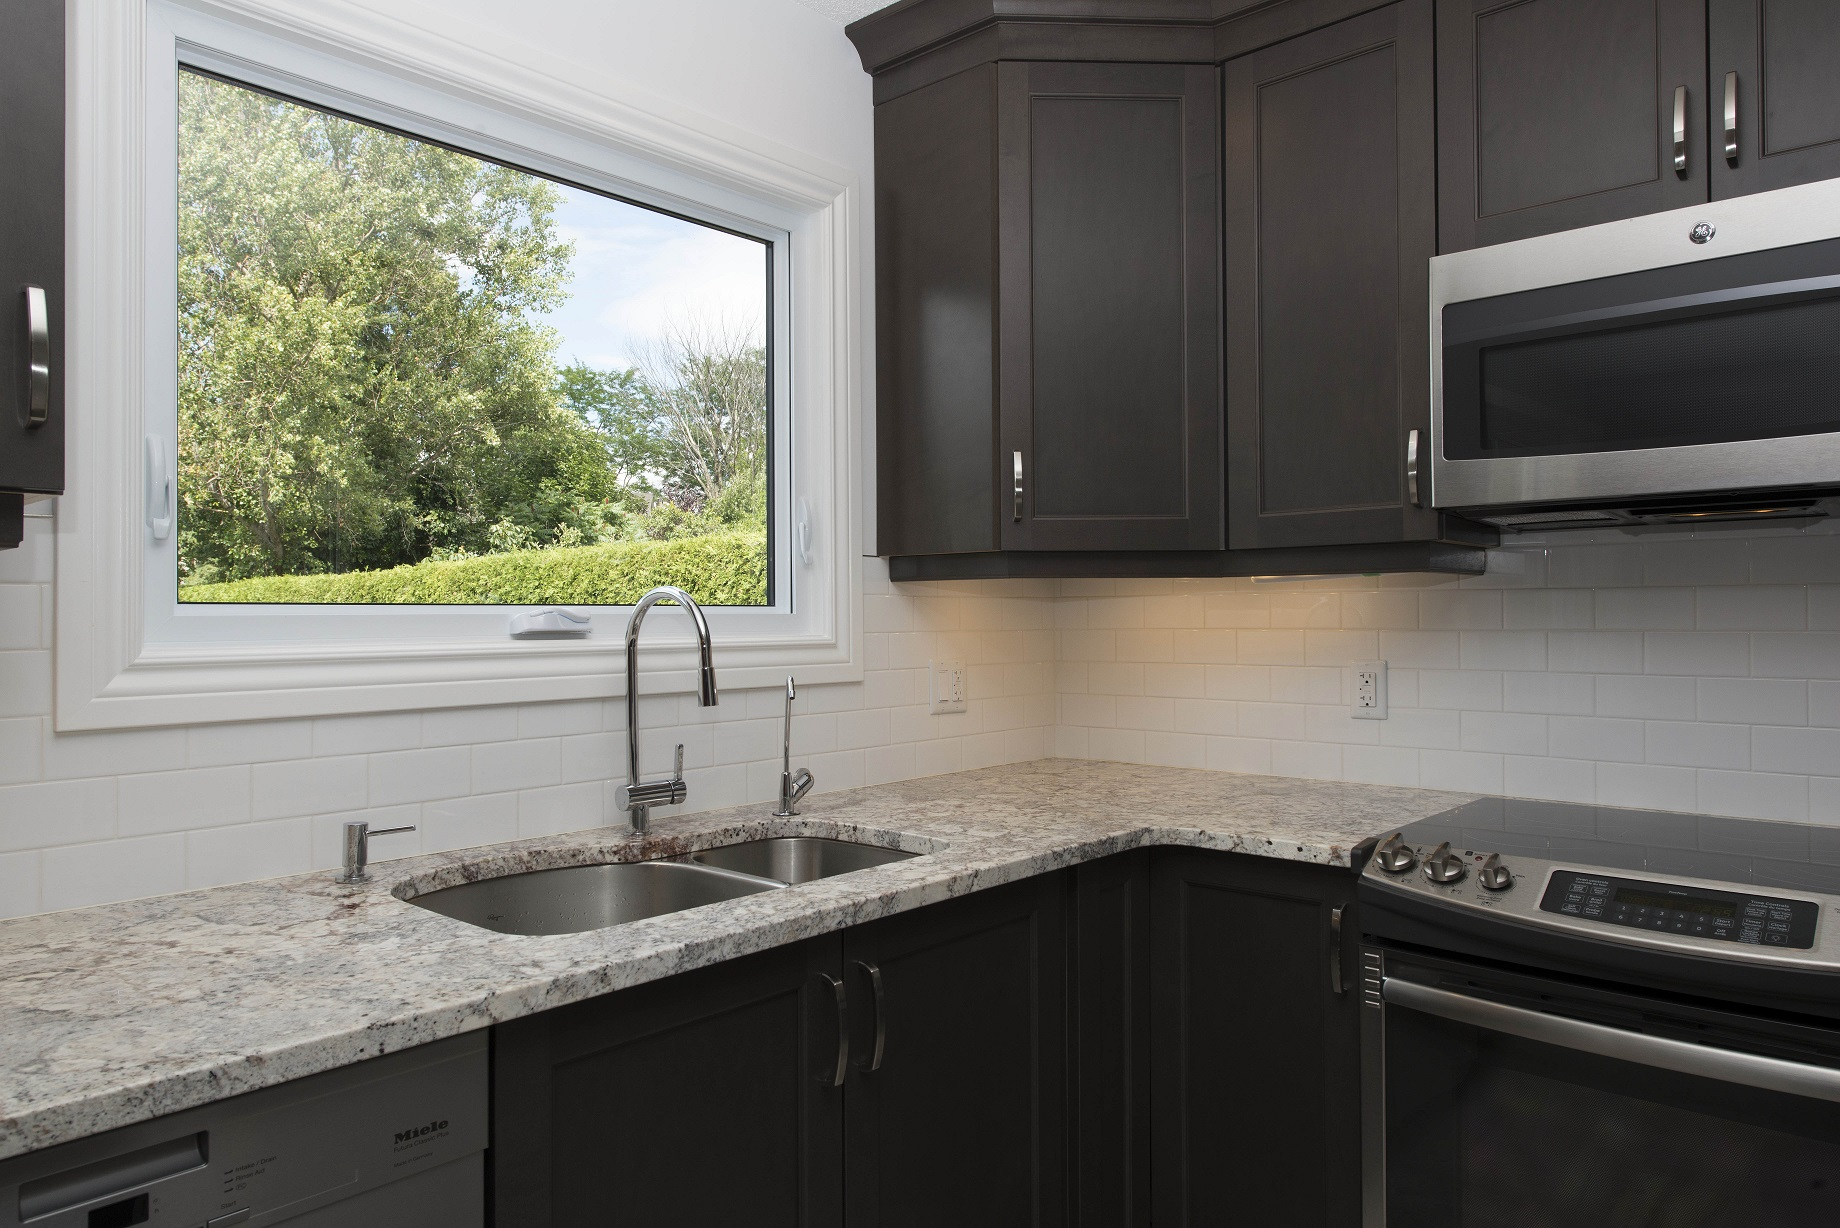 A Modern Kitchen Sink With Window Looking Out Onto Green Yard All To